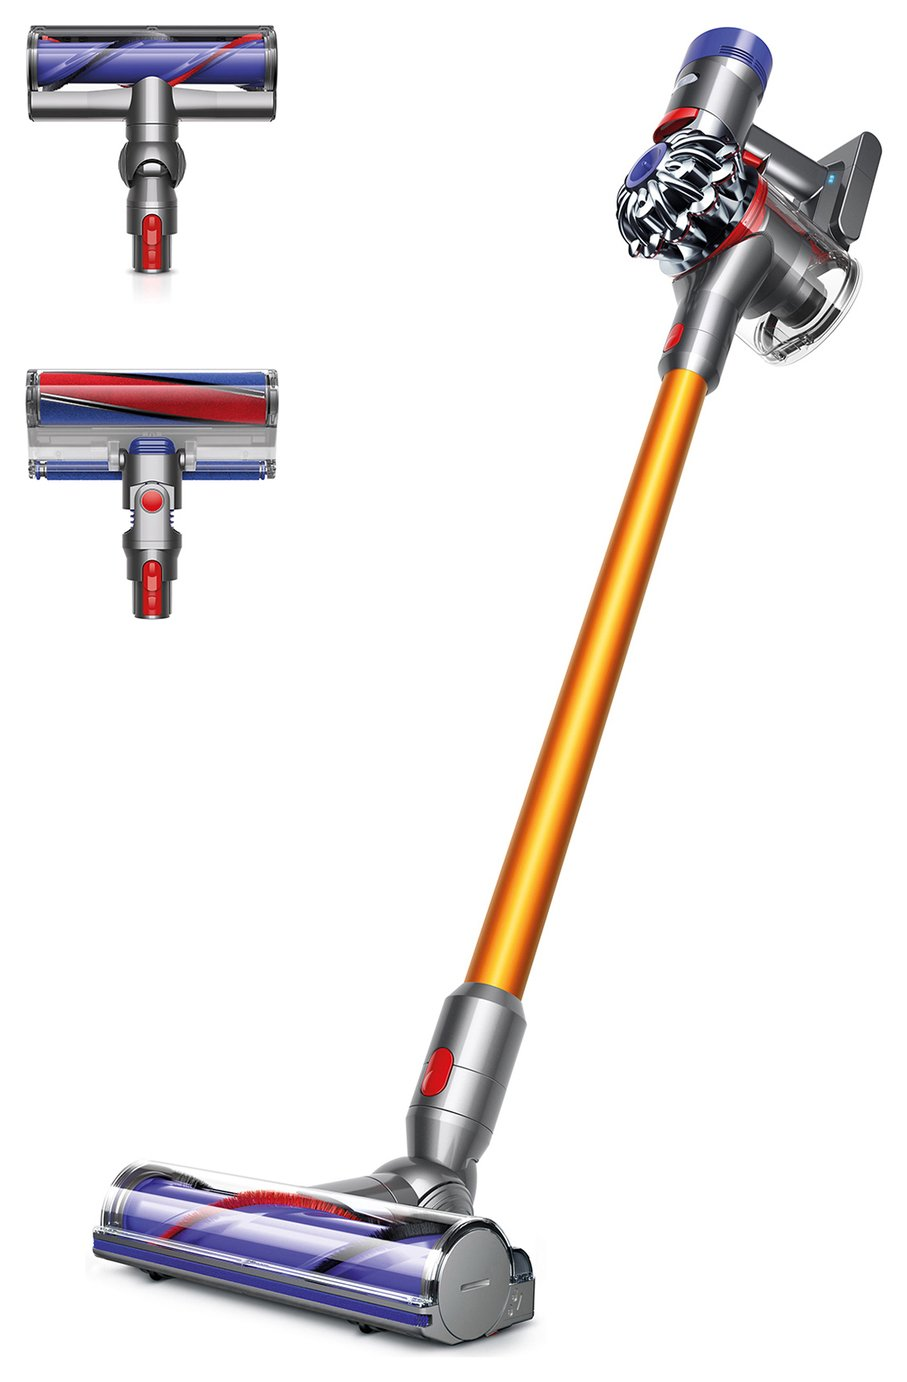 Ean 5025155024294 Dyson V8 Absolute Cordless Vacuum